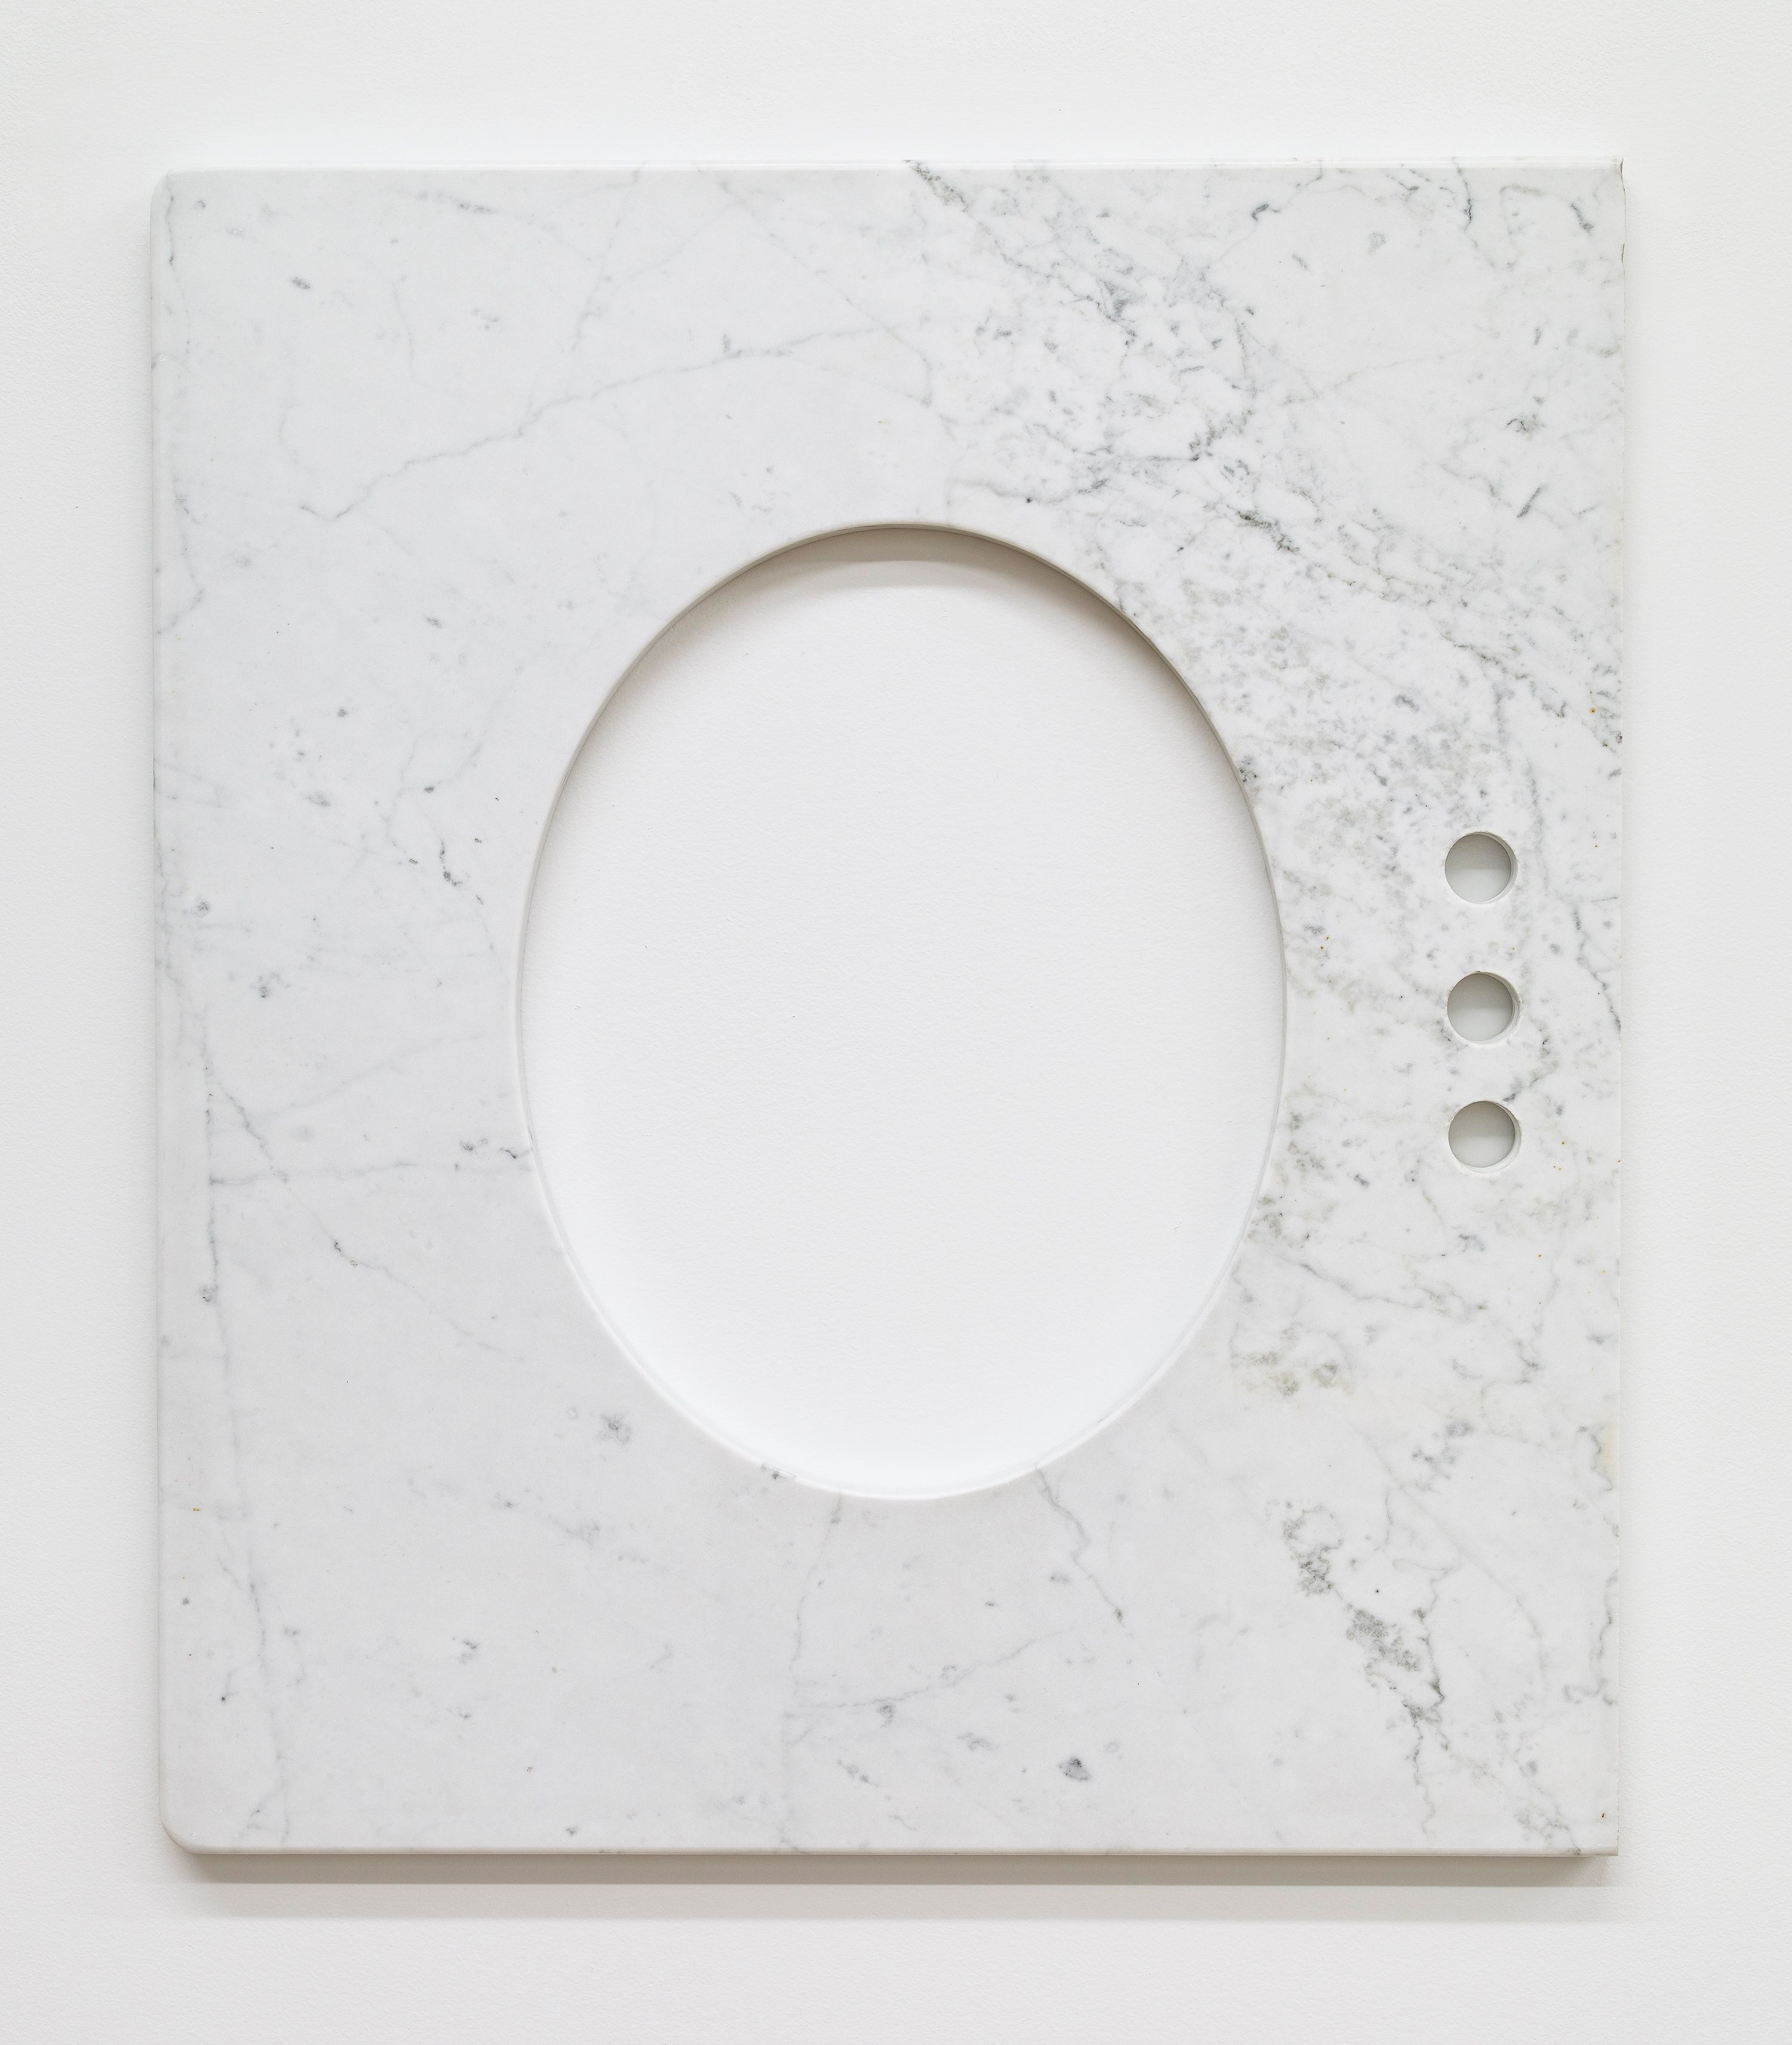 Marble panel with a large oval cut into it.